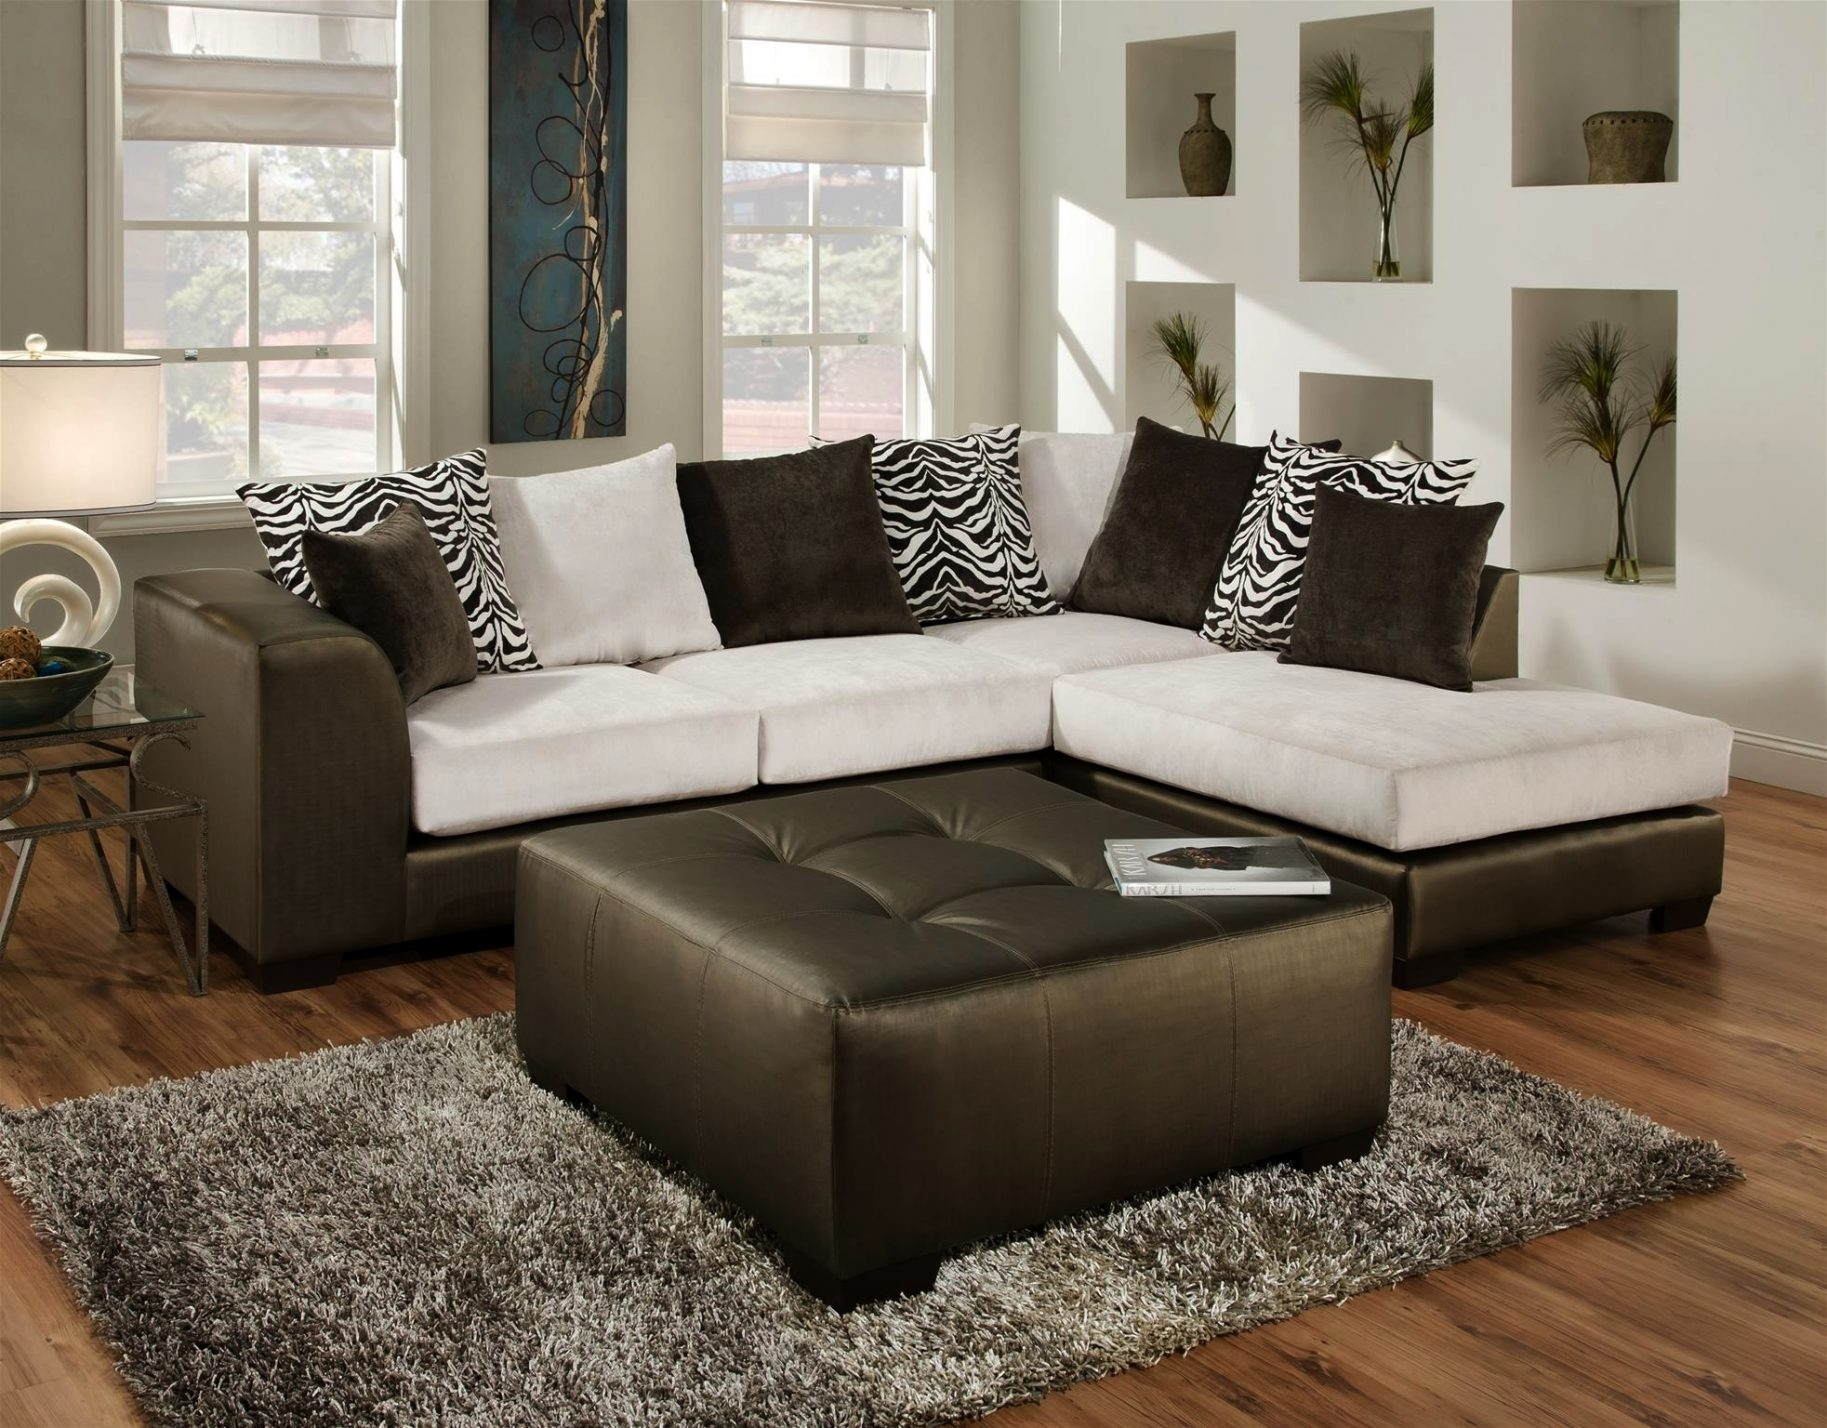 New Sectional Sofas Tampa 14 In 10 Foot Sectional Sofa With Intended Regarding Tampa Sectional Sofas (View 4 of 10)